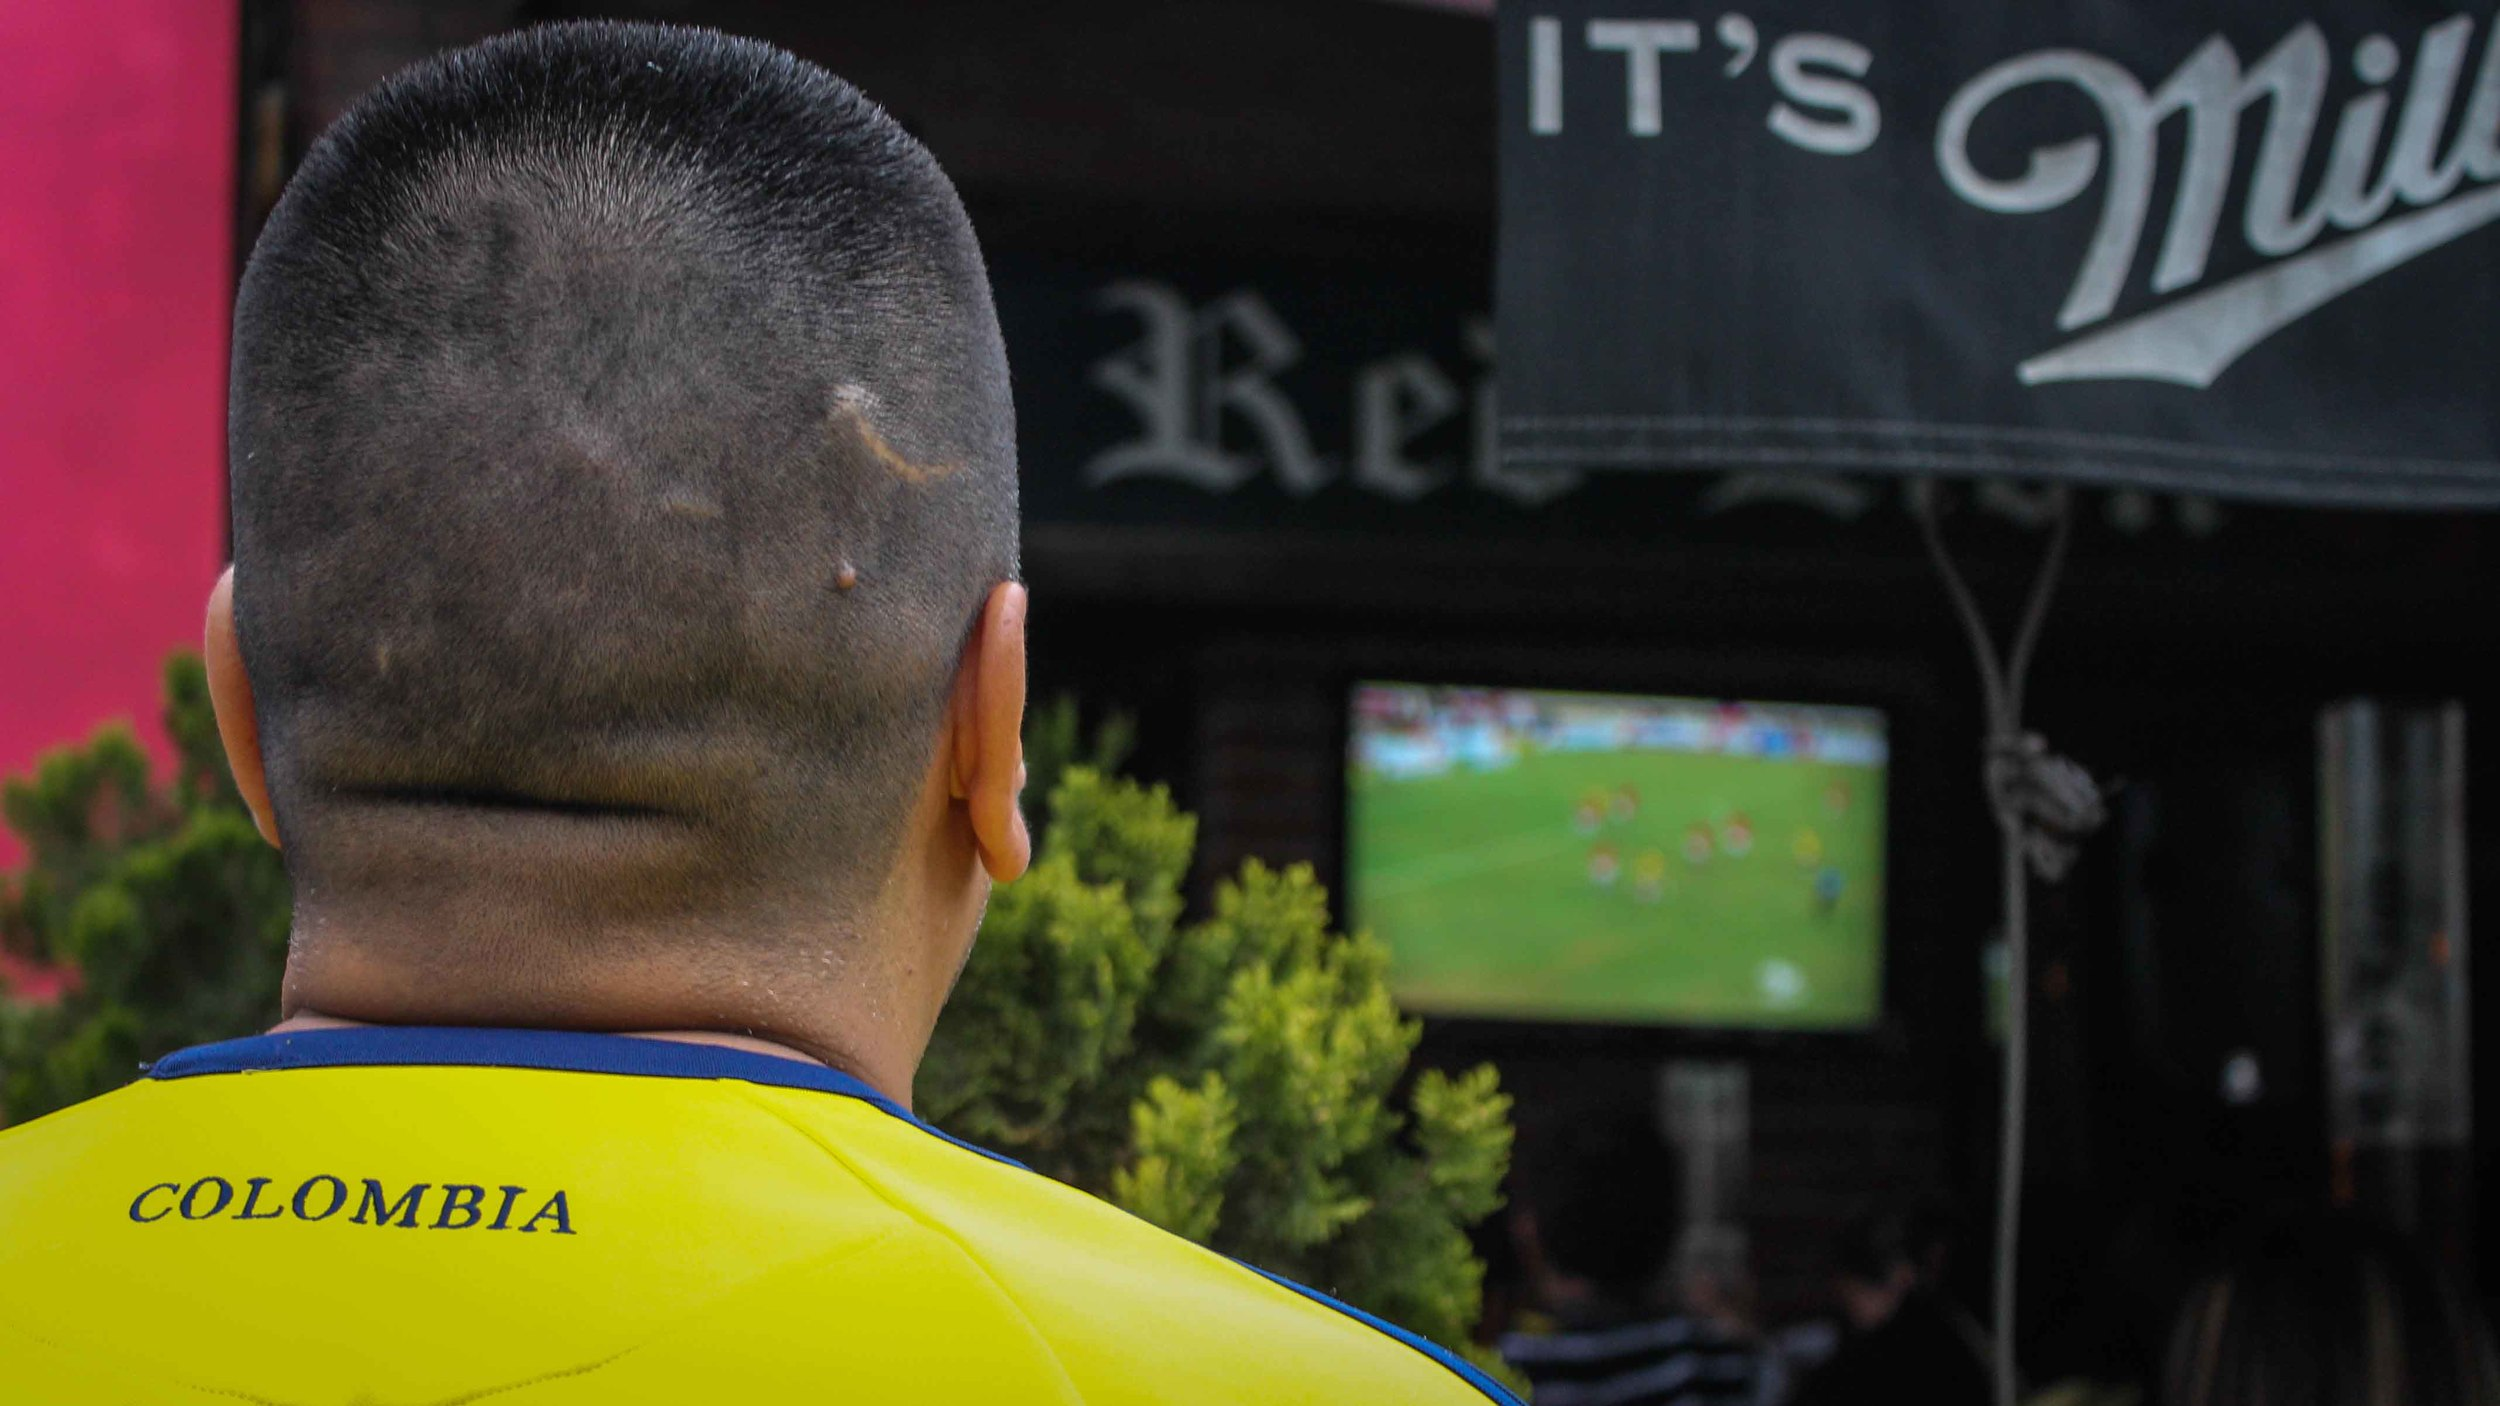 You could say, Colombians are 'scarred' spectators. Mmm, poetic.